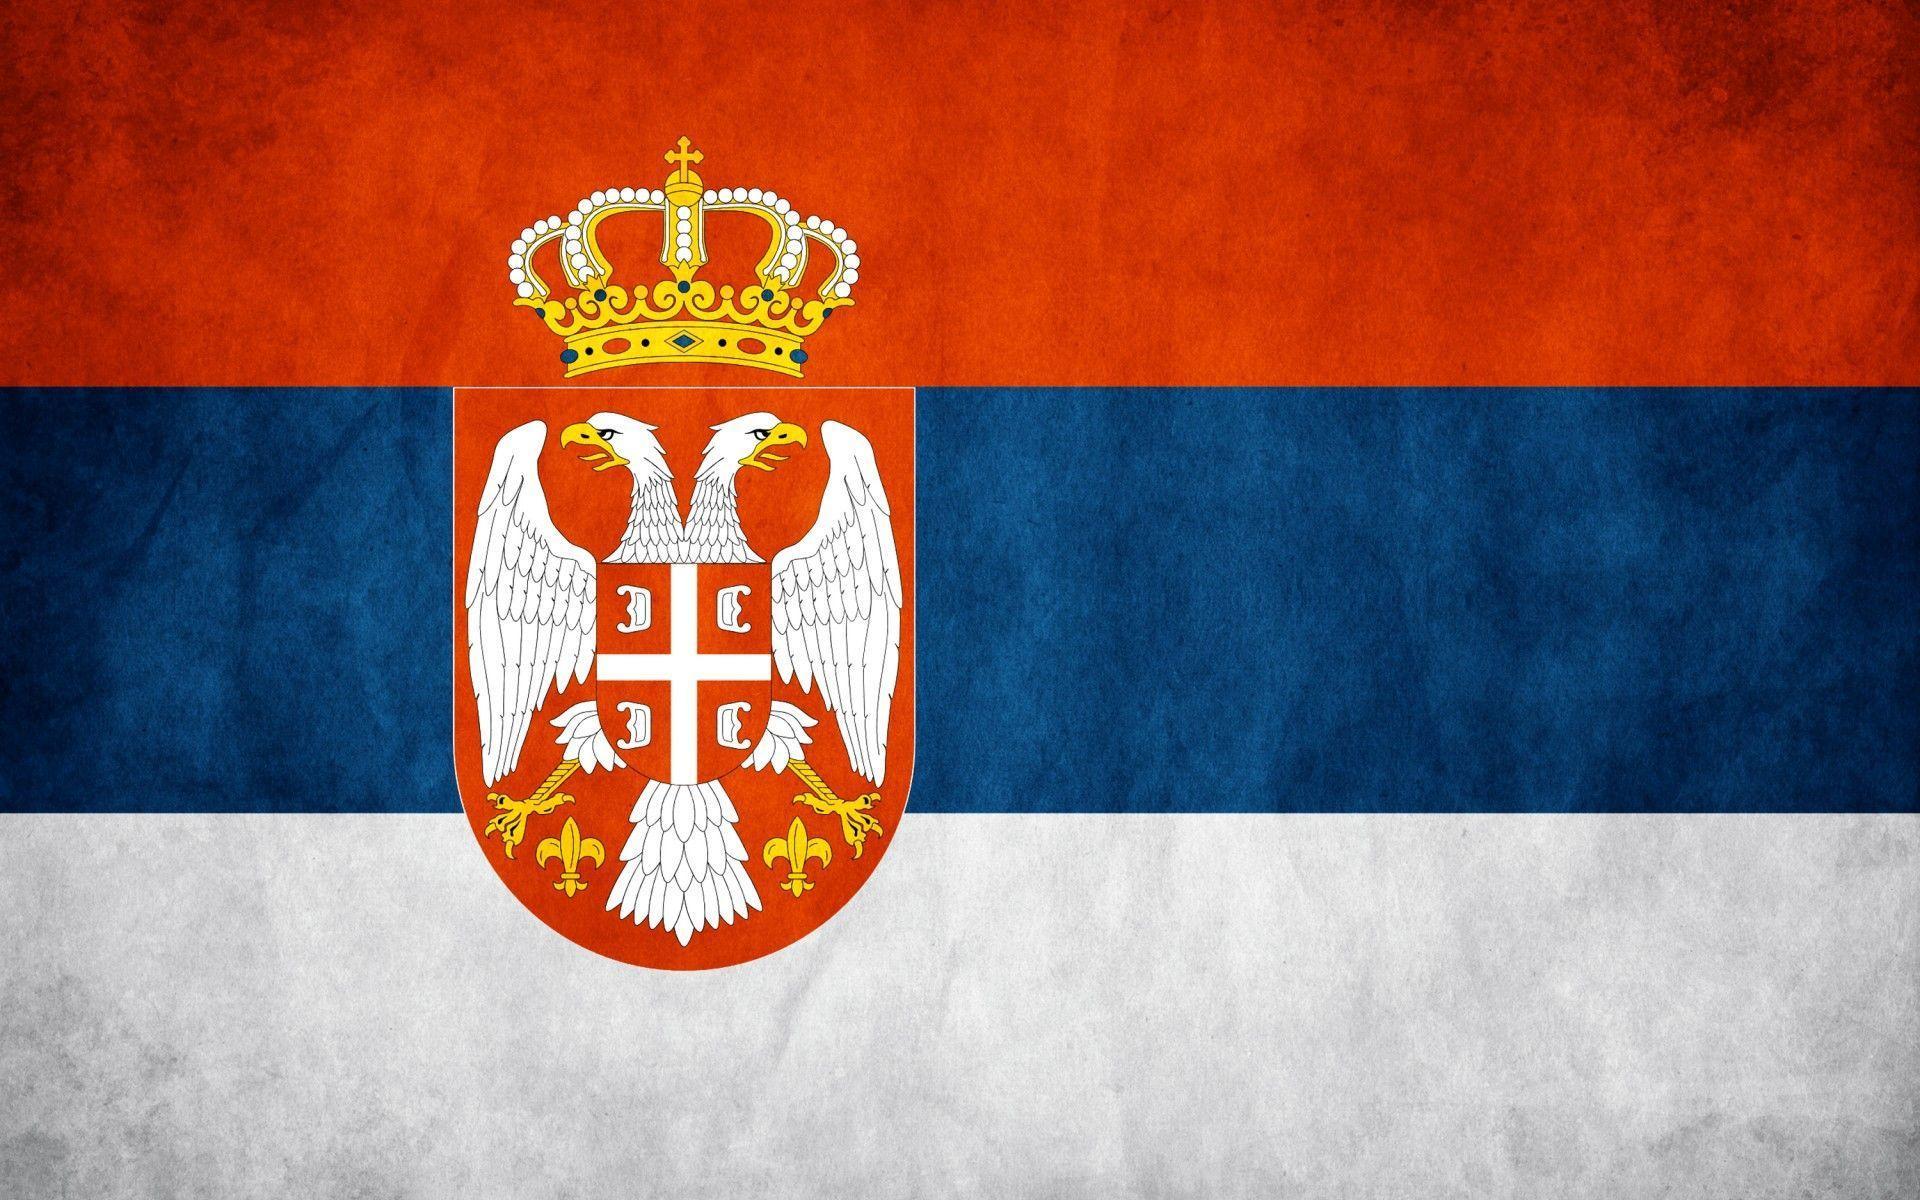 Beauty serbia Wallpapers 1366x768 2014